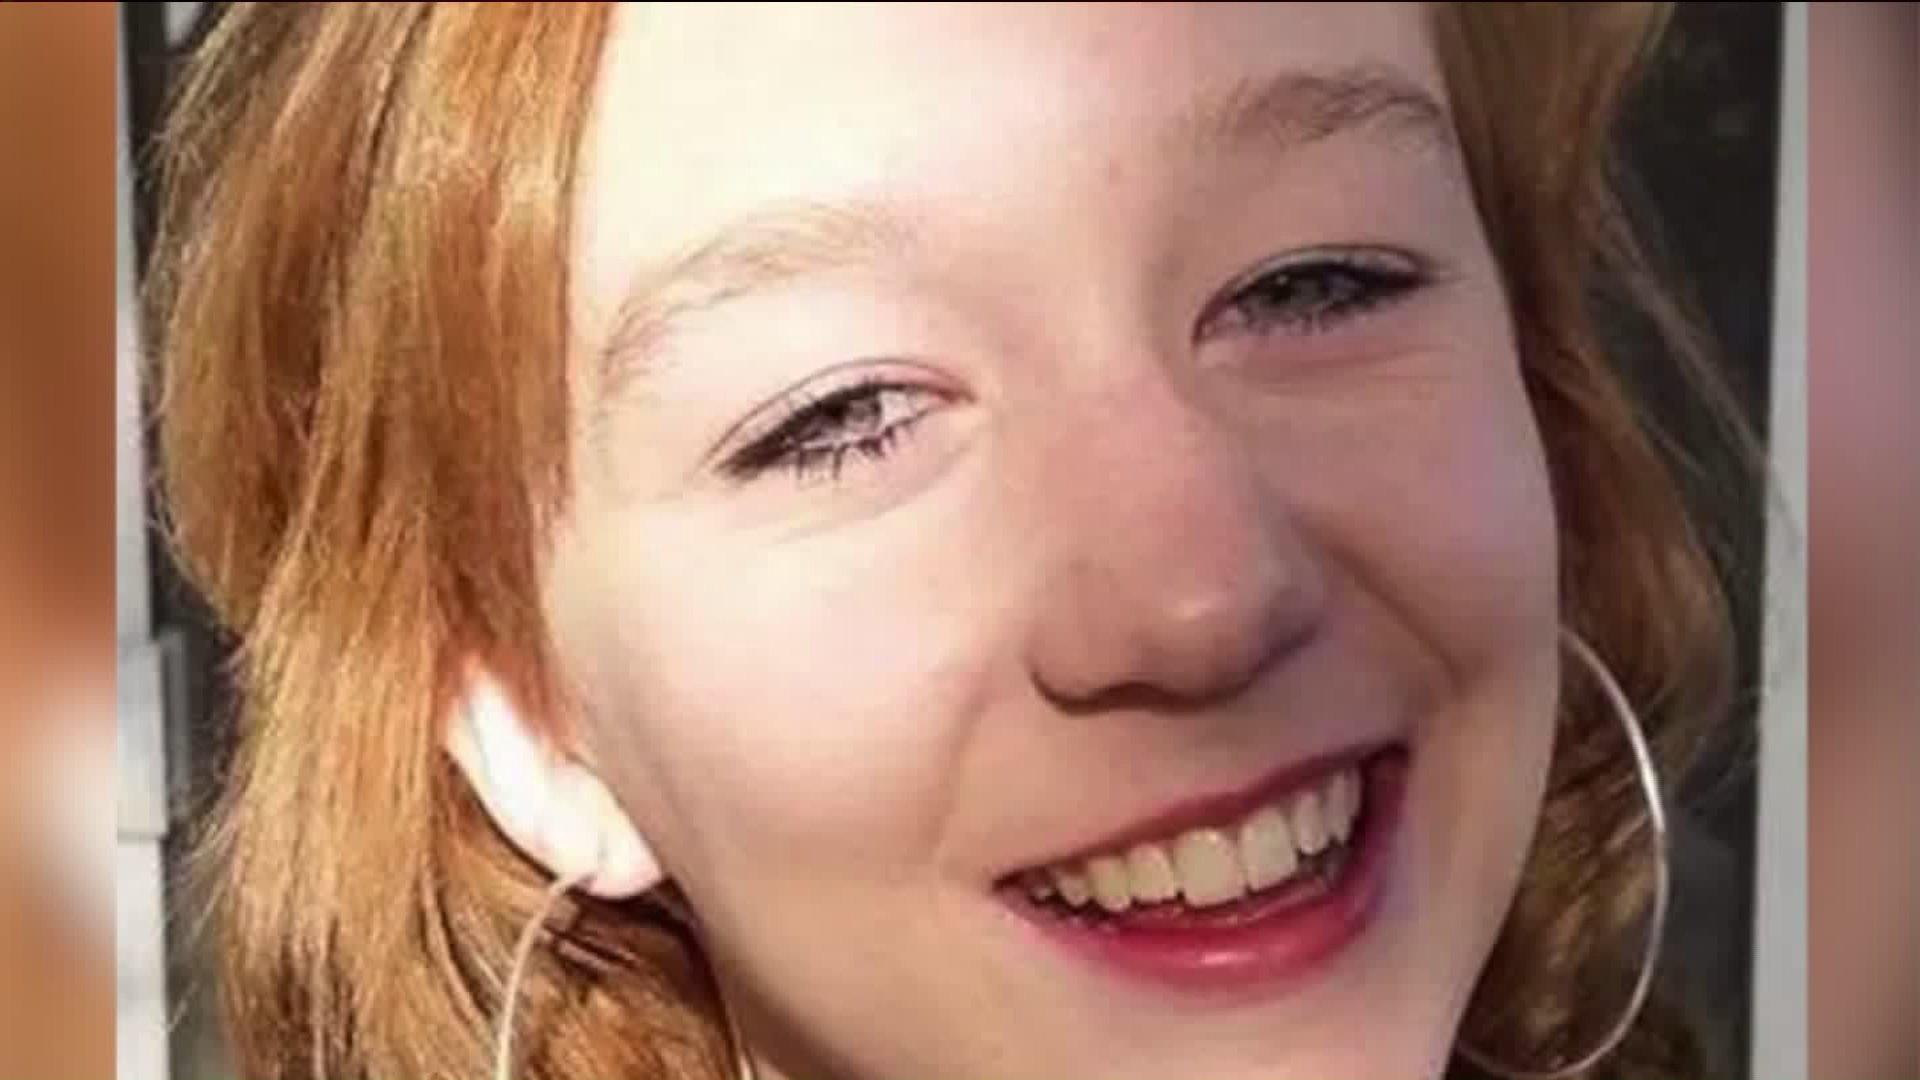 $20,000 Reward Offered for Driver Who Fatally Struck 15-Year-Old California Girl